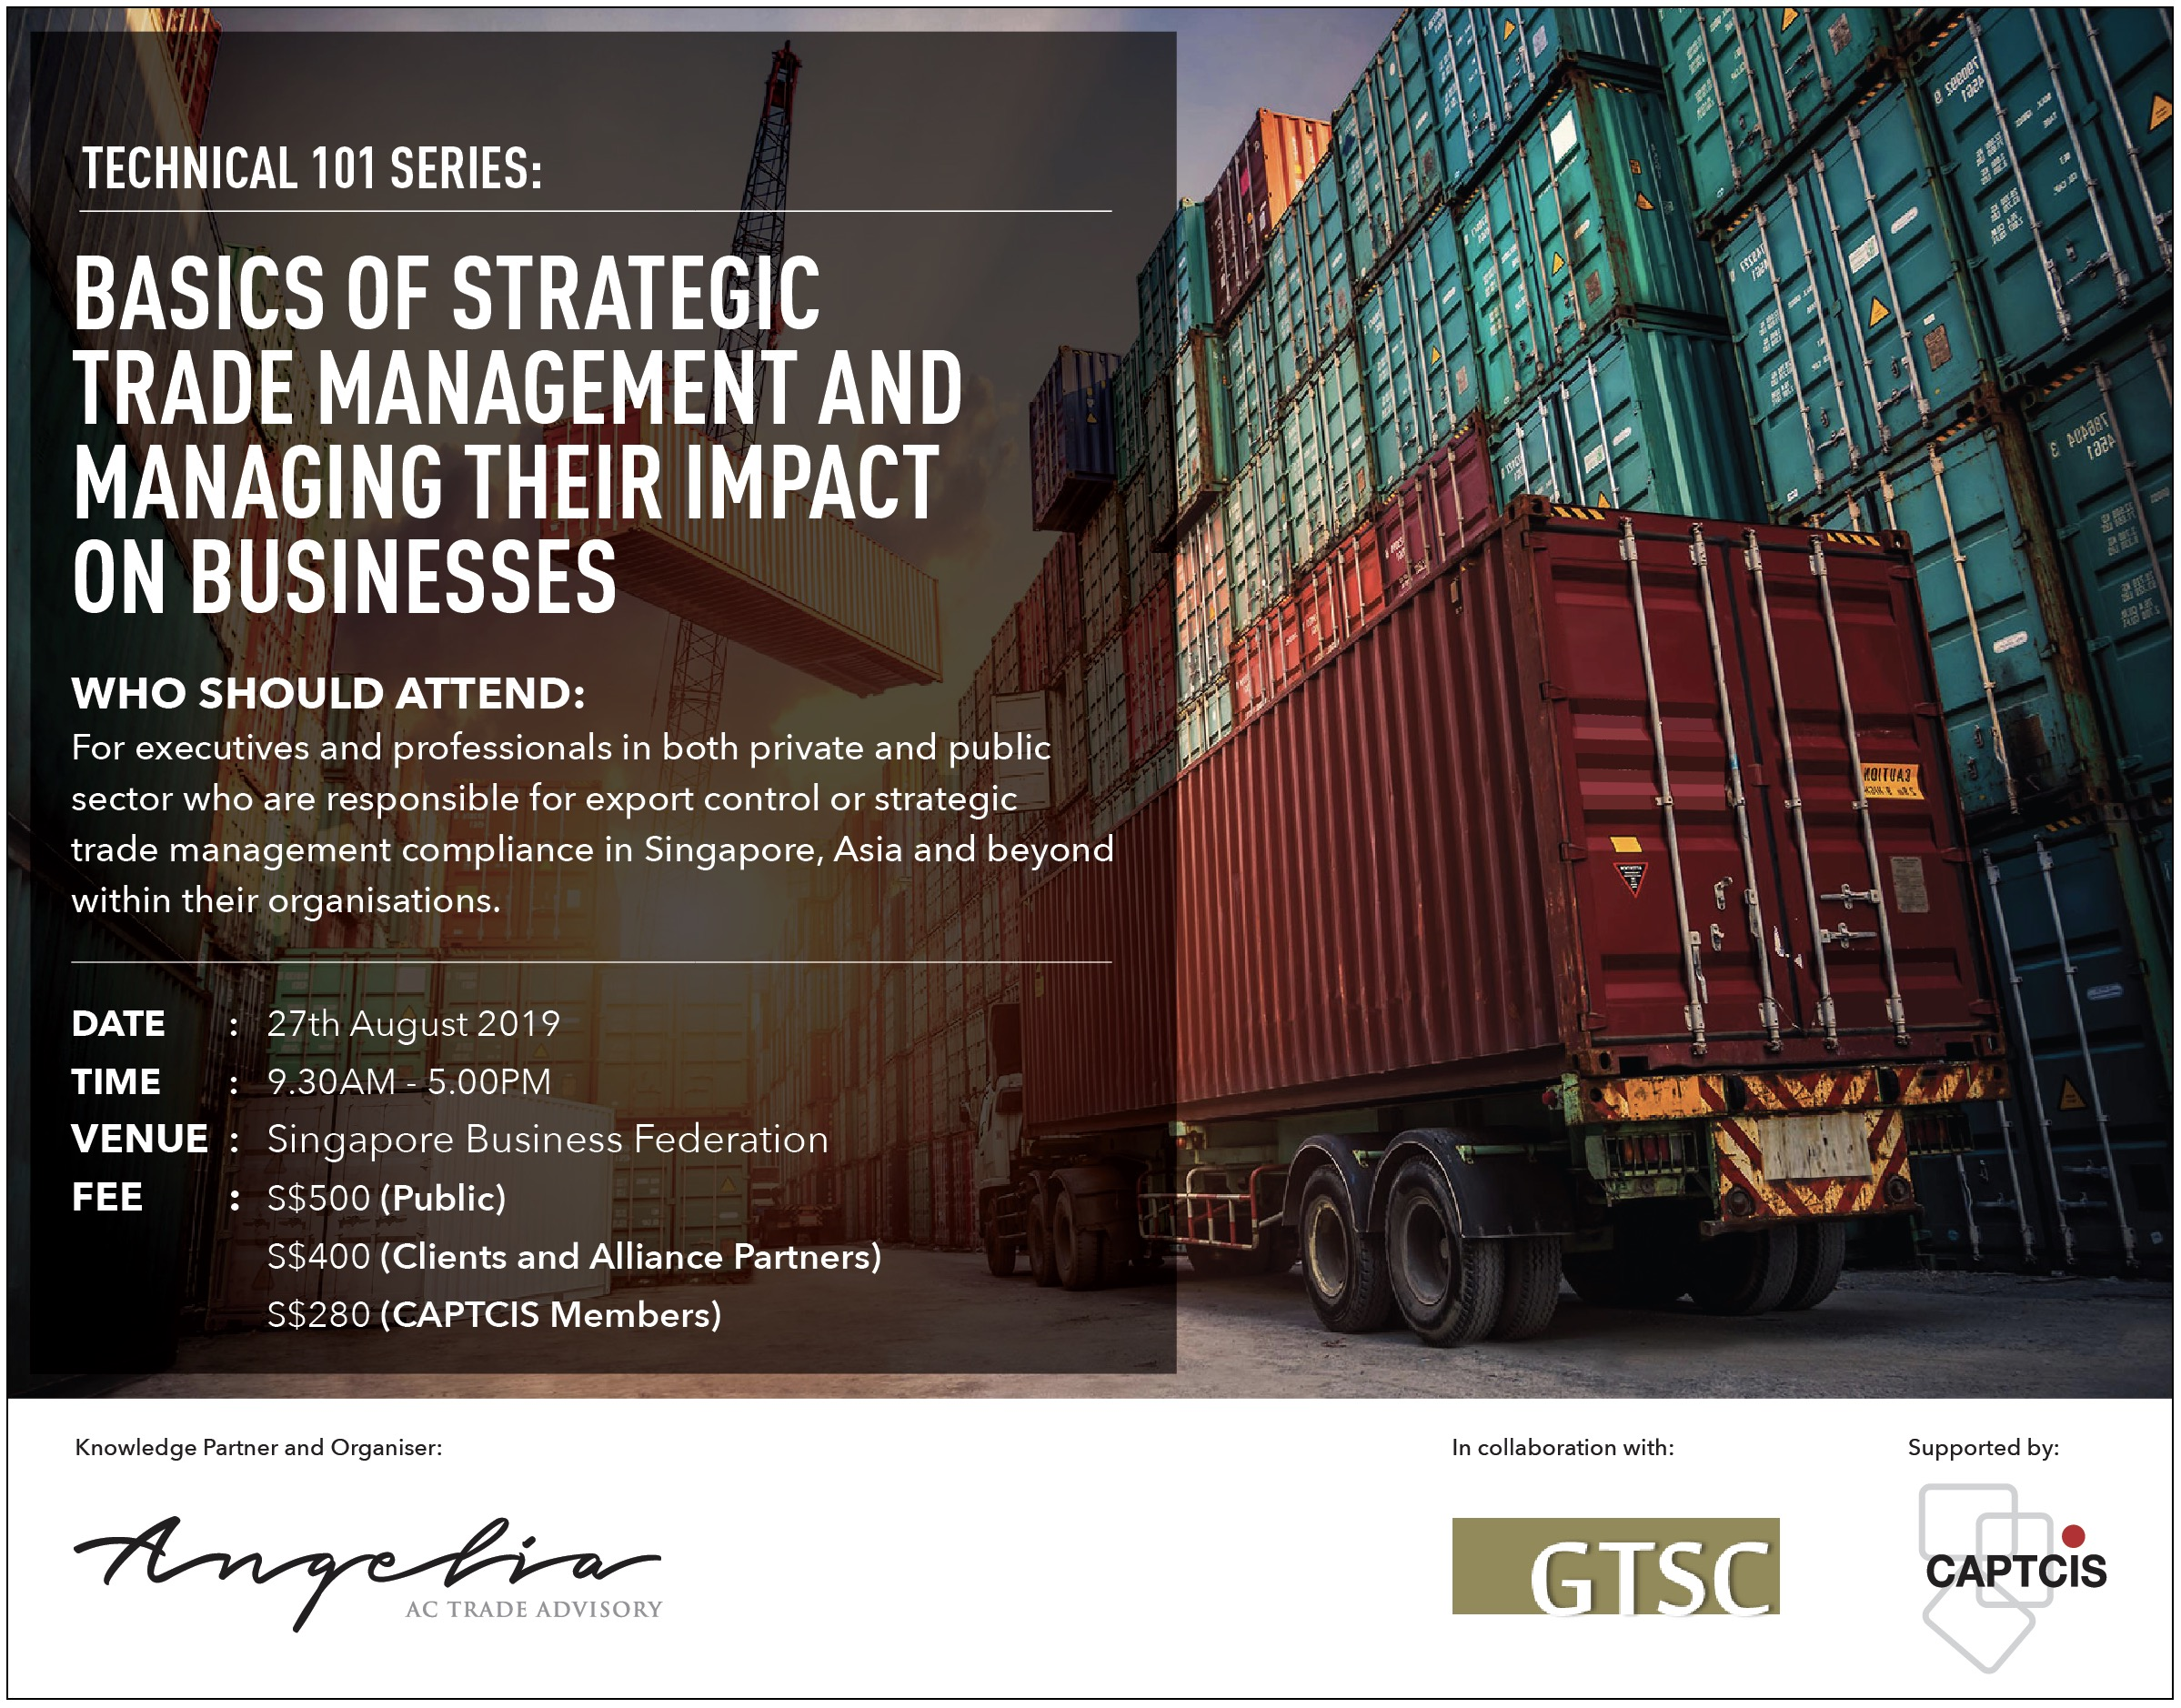 Basics of Strategic Trade Management and Managing Their Impact on Businesses